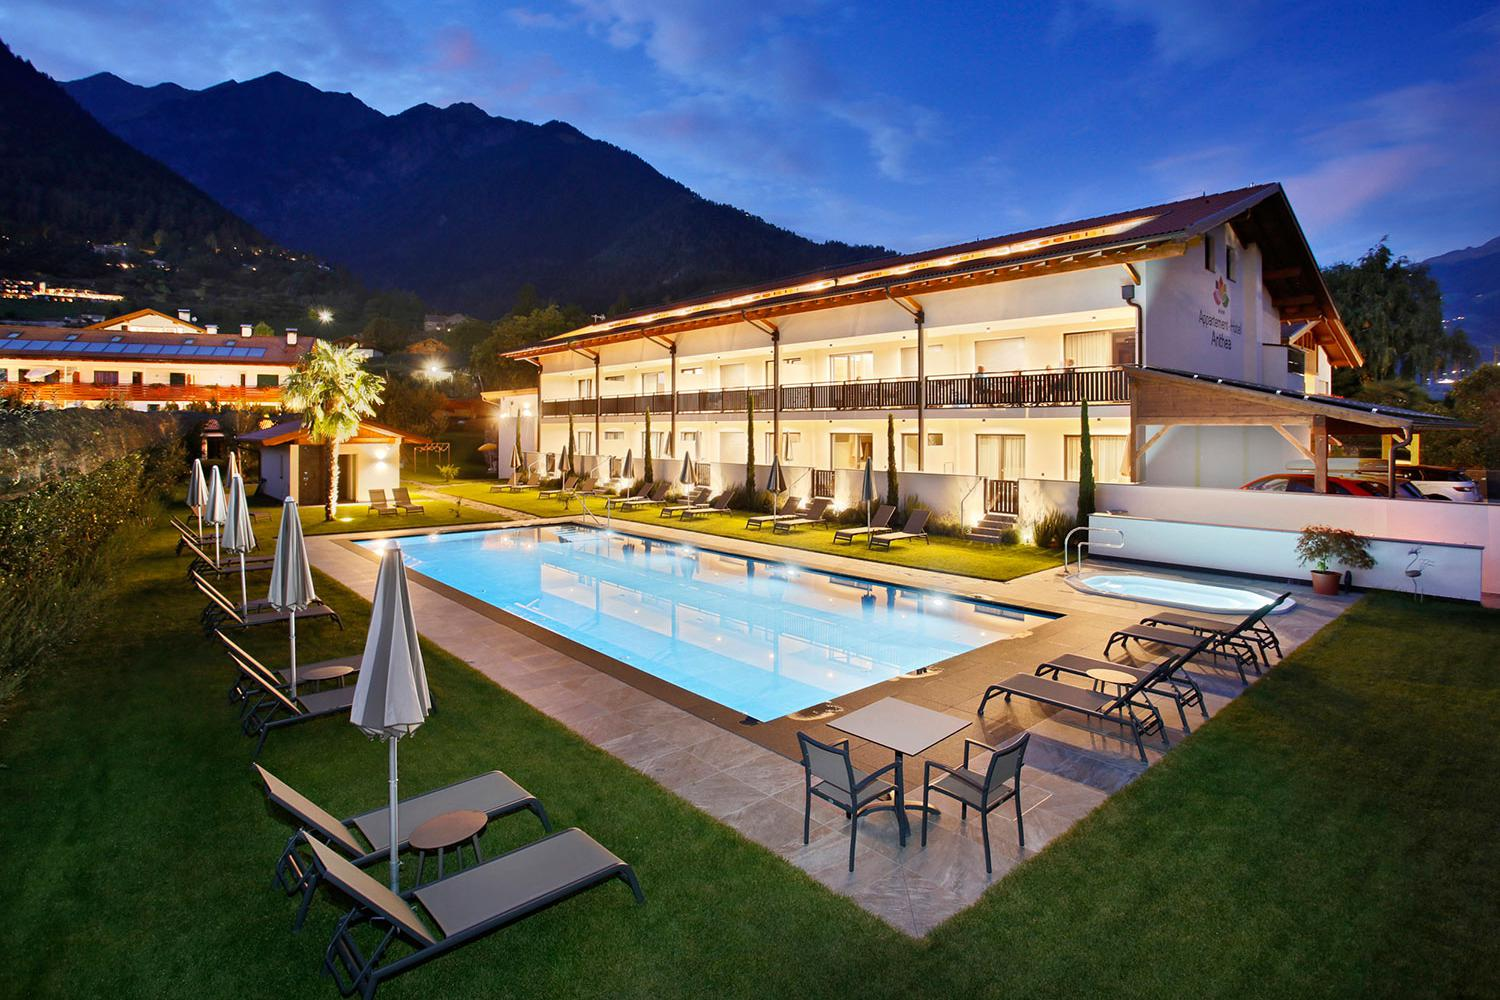 Appartement-Hotel Anthea & Pool bei Nacht